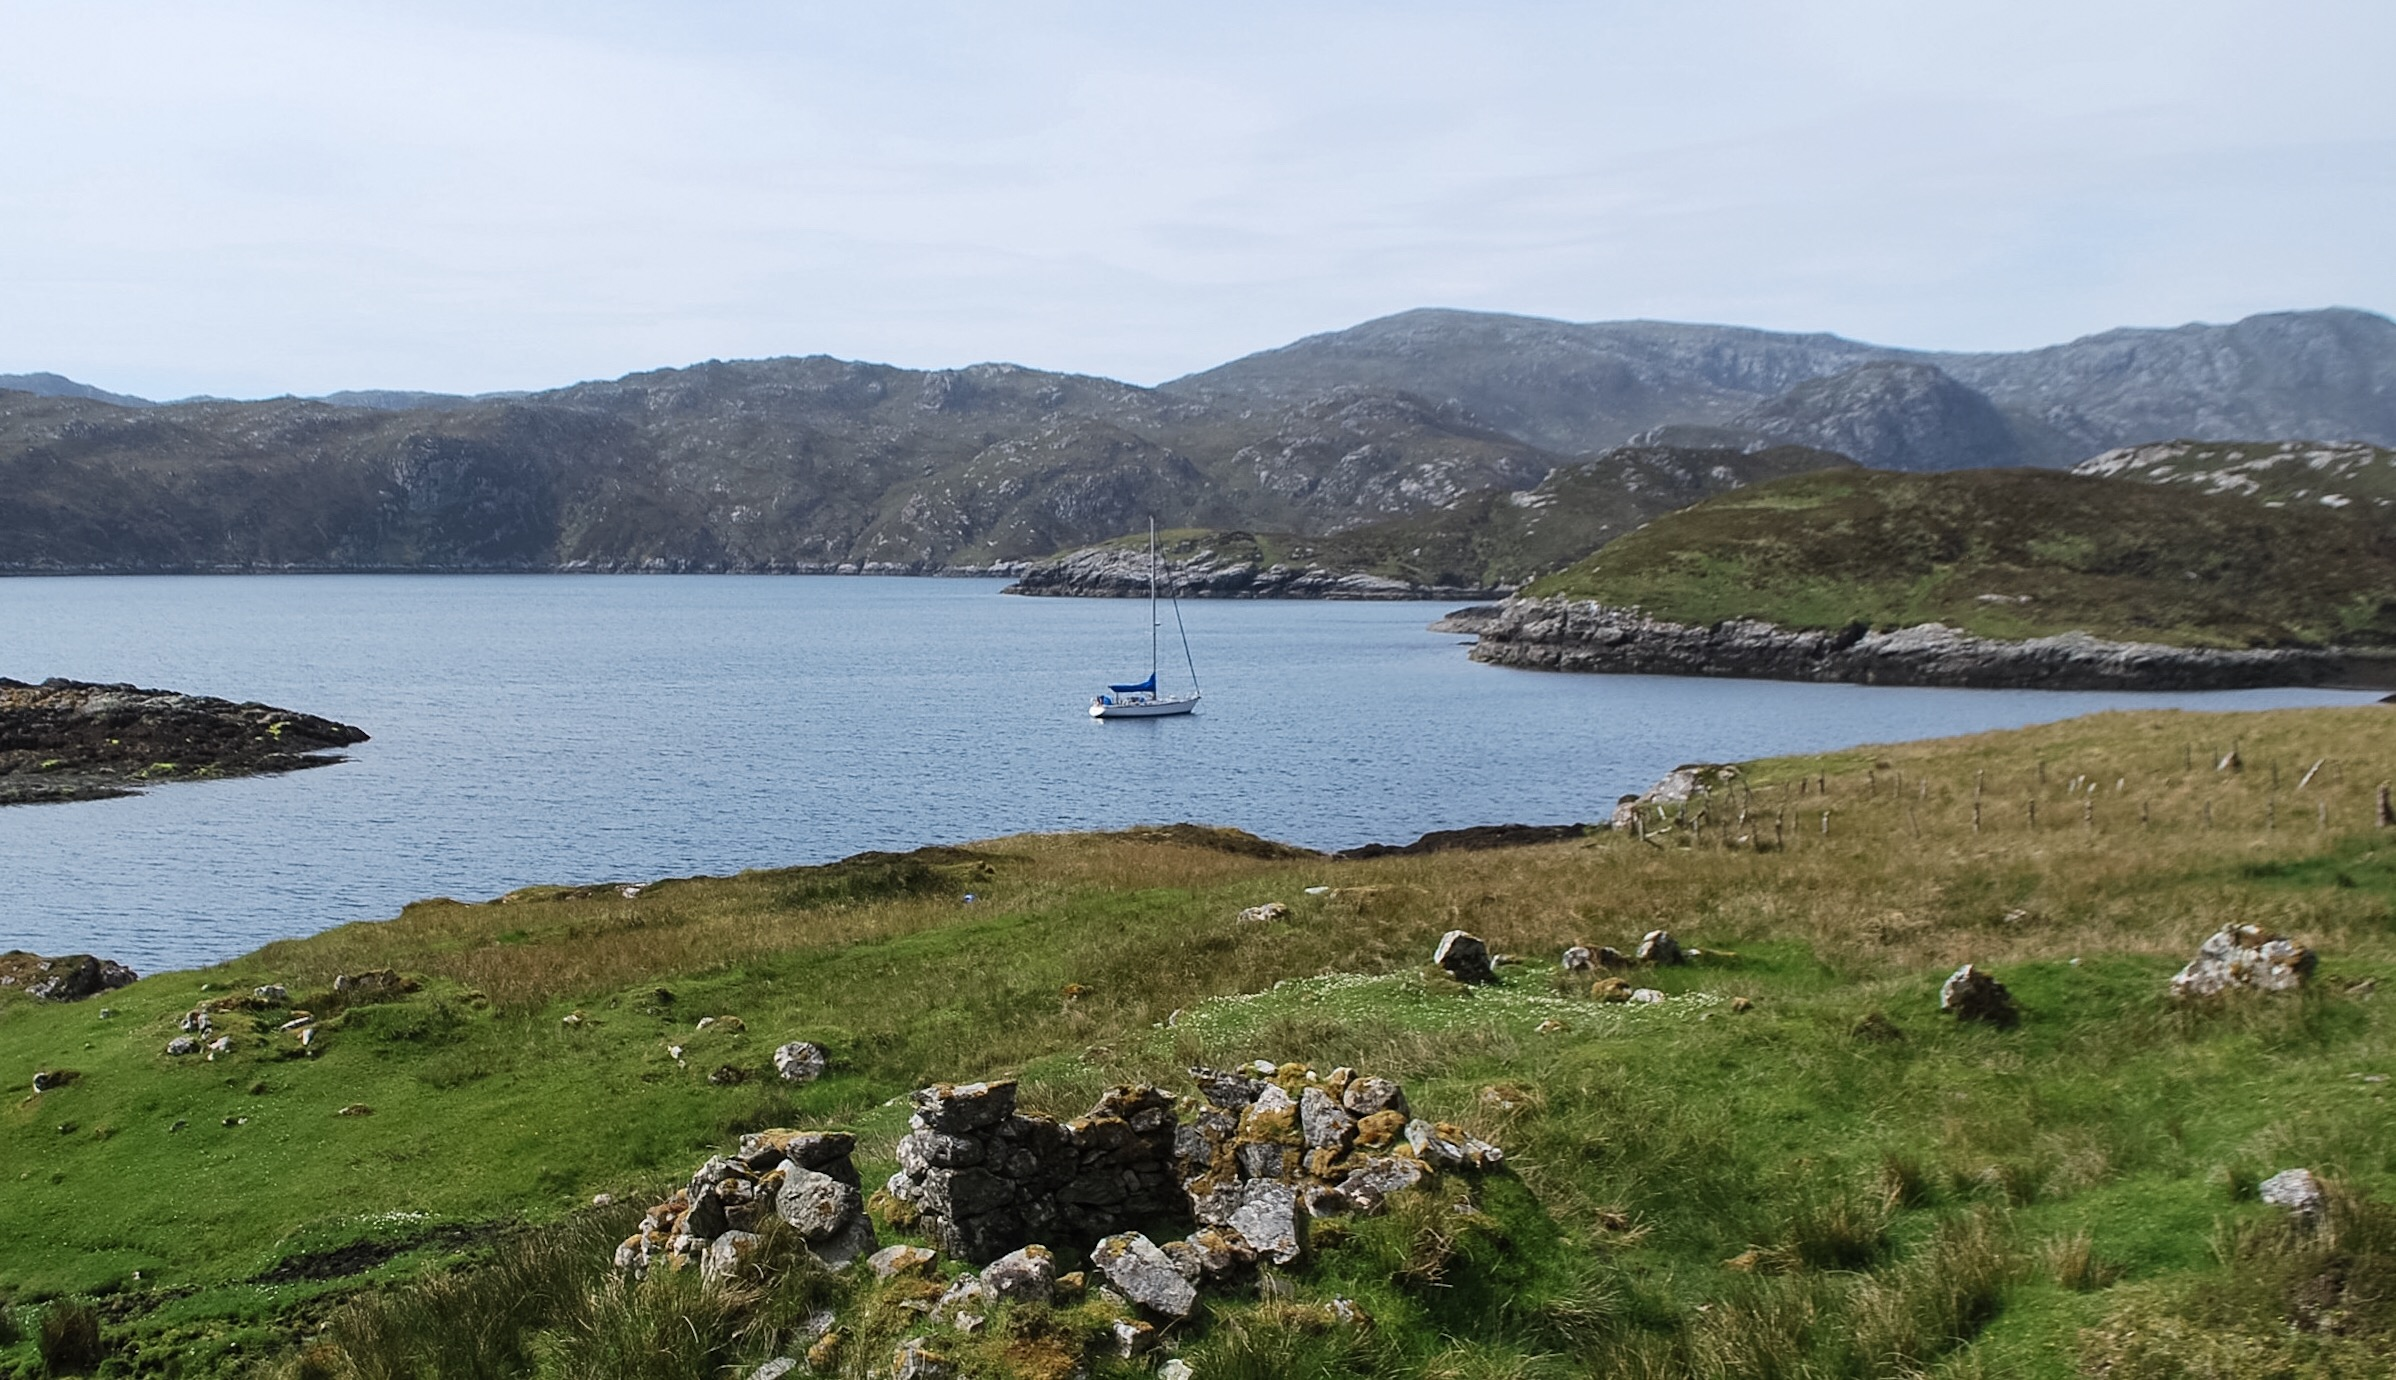 Temptress anchored on Harris